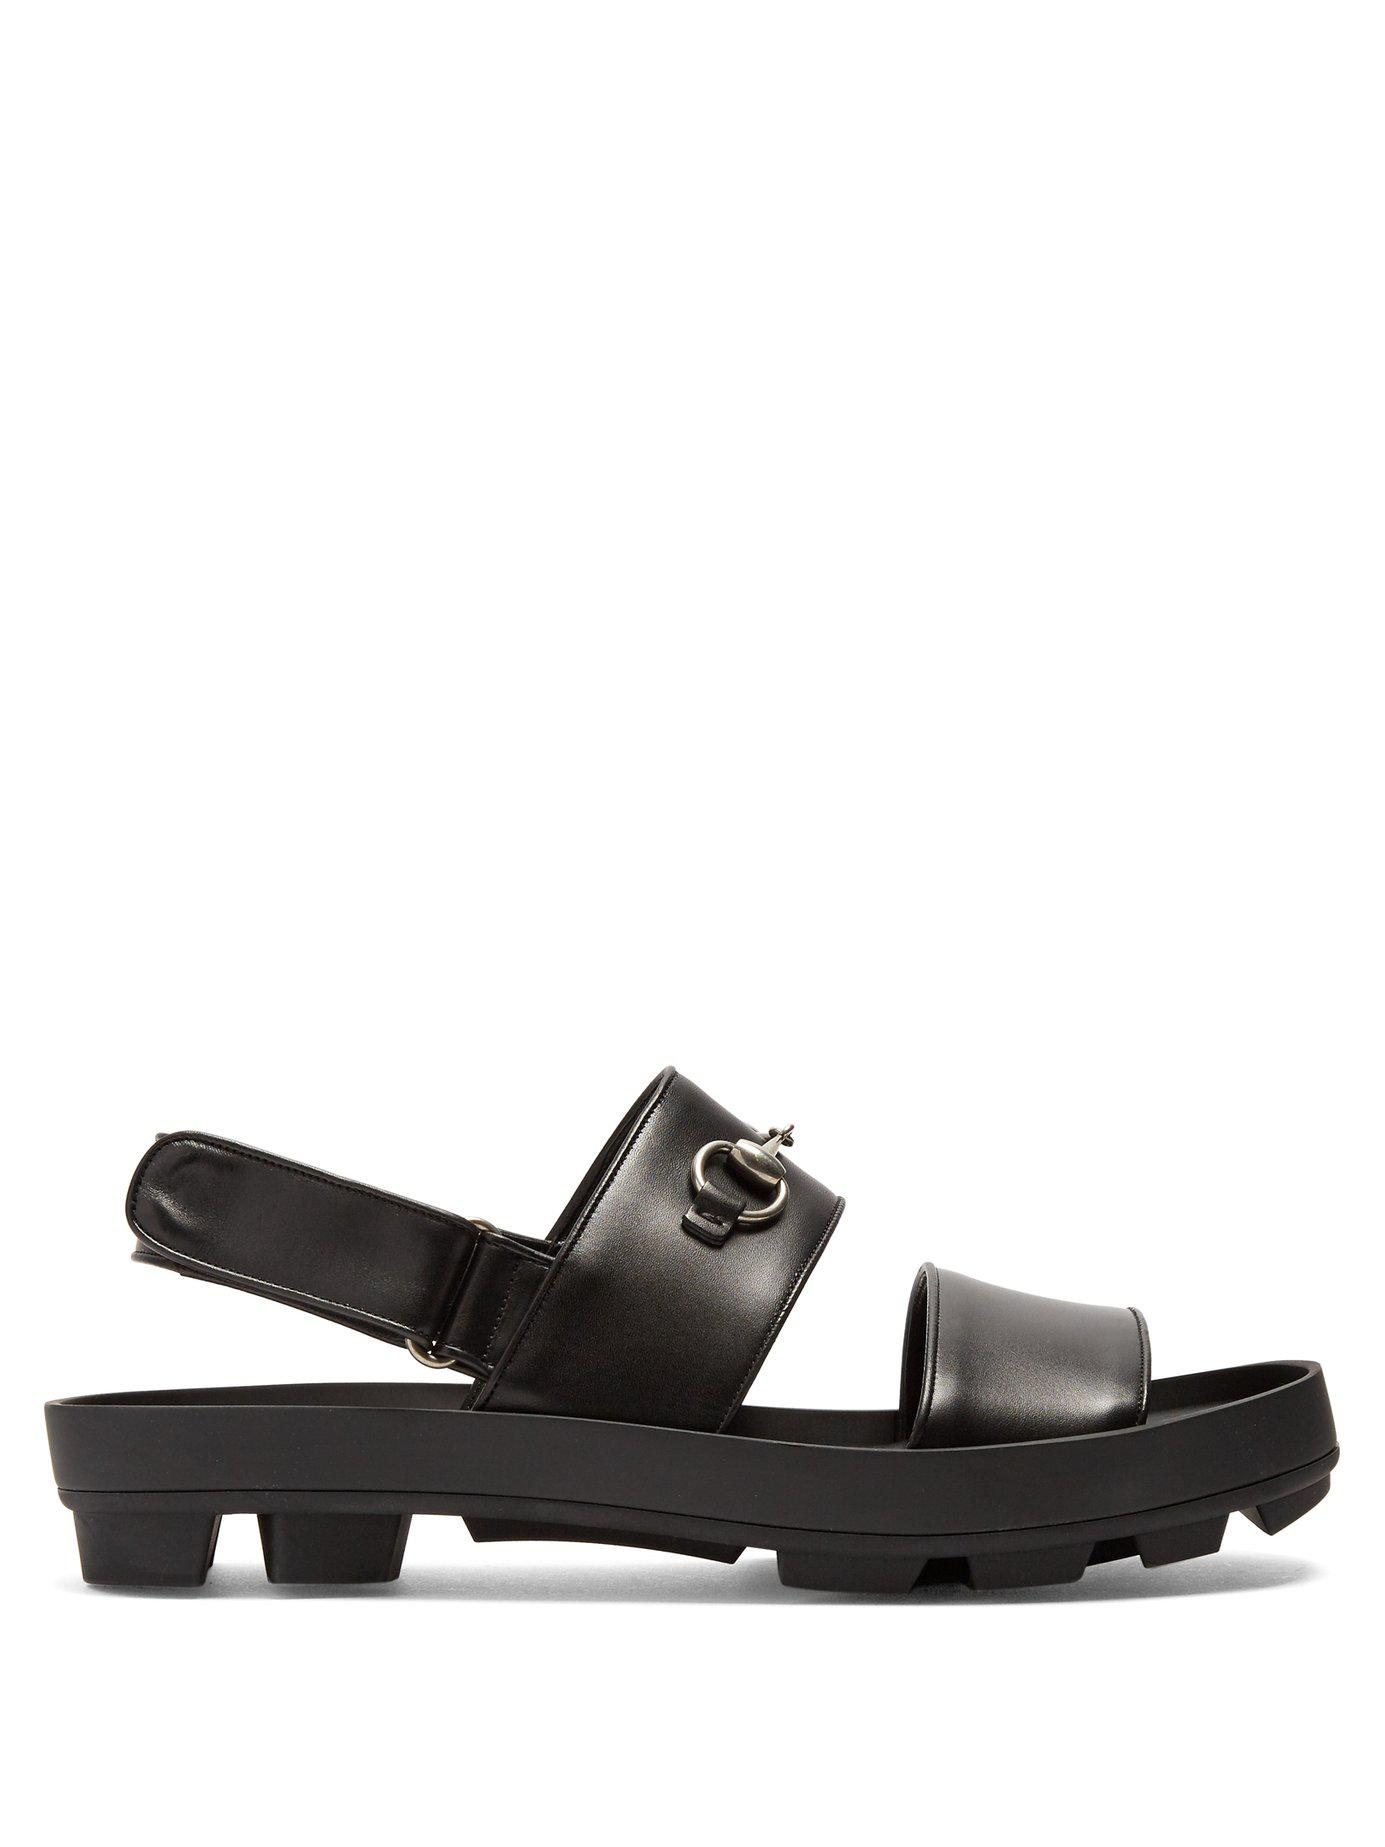 c3a96c7f6b3d Lyst - Gucci Sam Leather Sandals in Black for Men